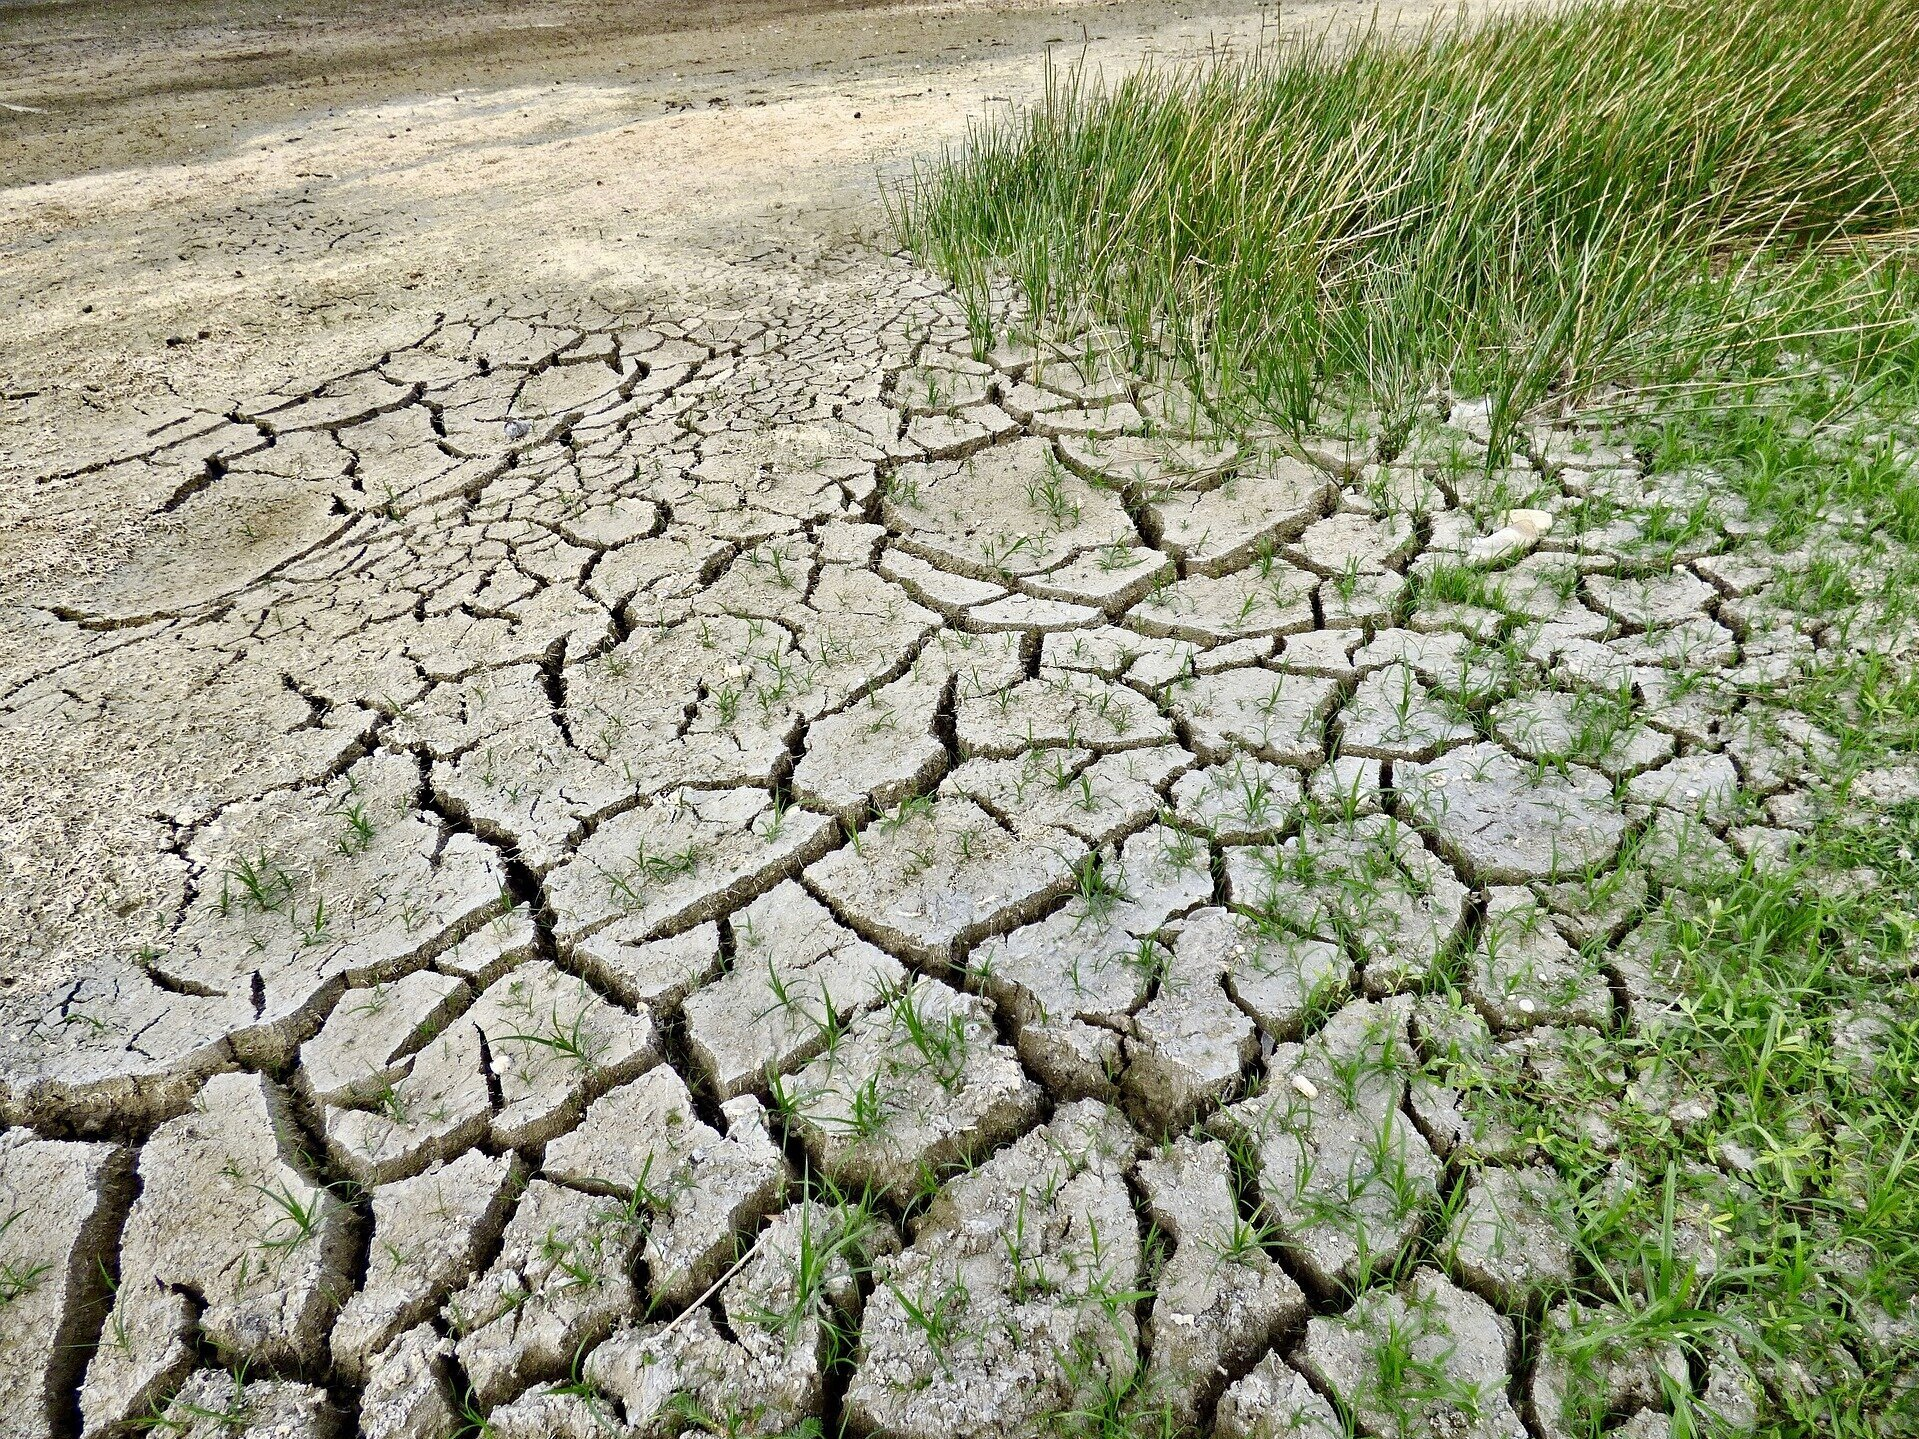 Nature loss puts businesses and the economy at risk - There is mounting evidence that the health of our planet is declining at a rate never seen in human history and putting the global economy at risk. The earth is under ever-increasing pressure, wildlife is disappearing, sea and land are being degraded, and resources are becoming scarce.